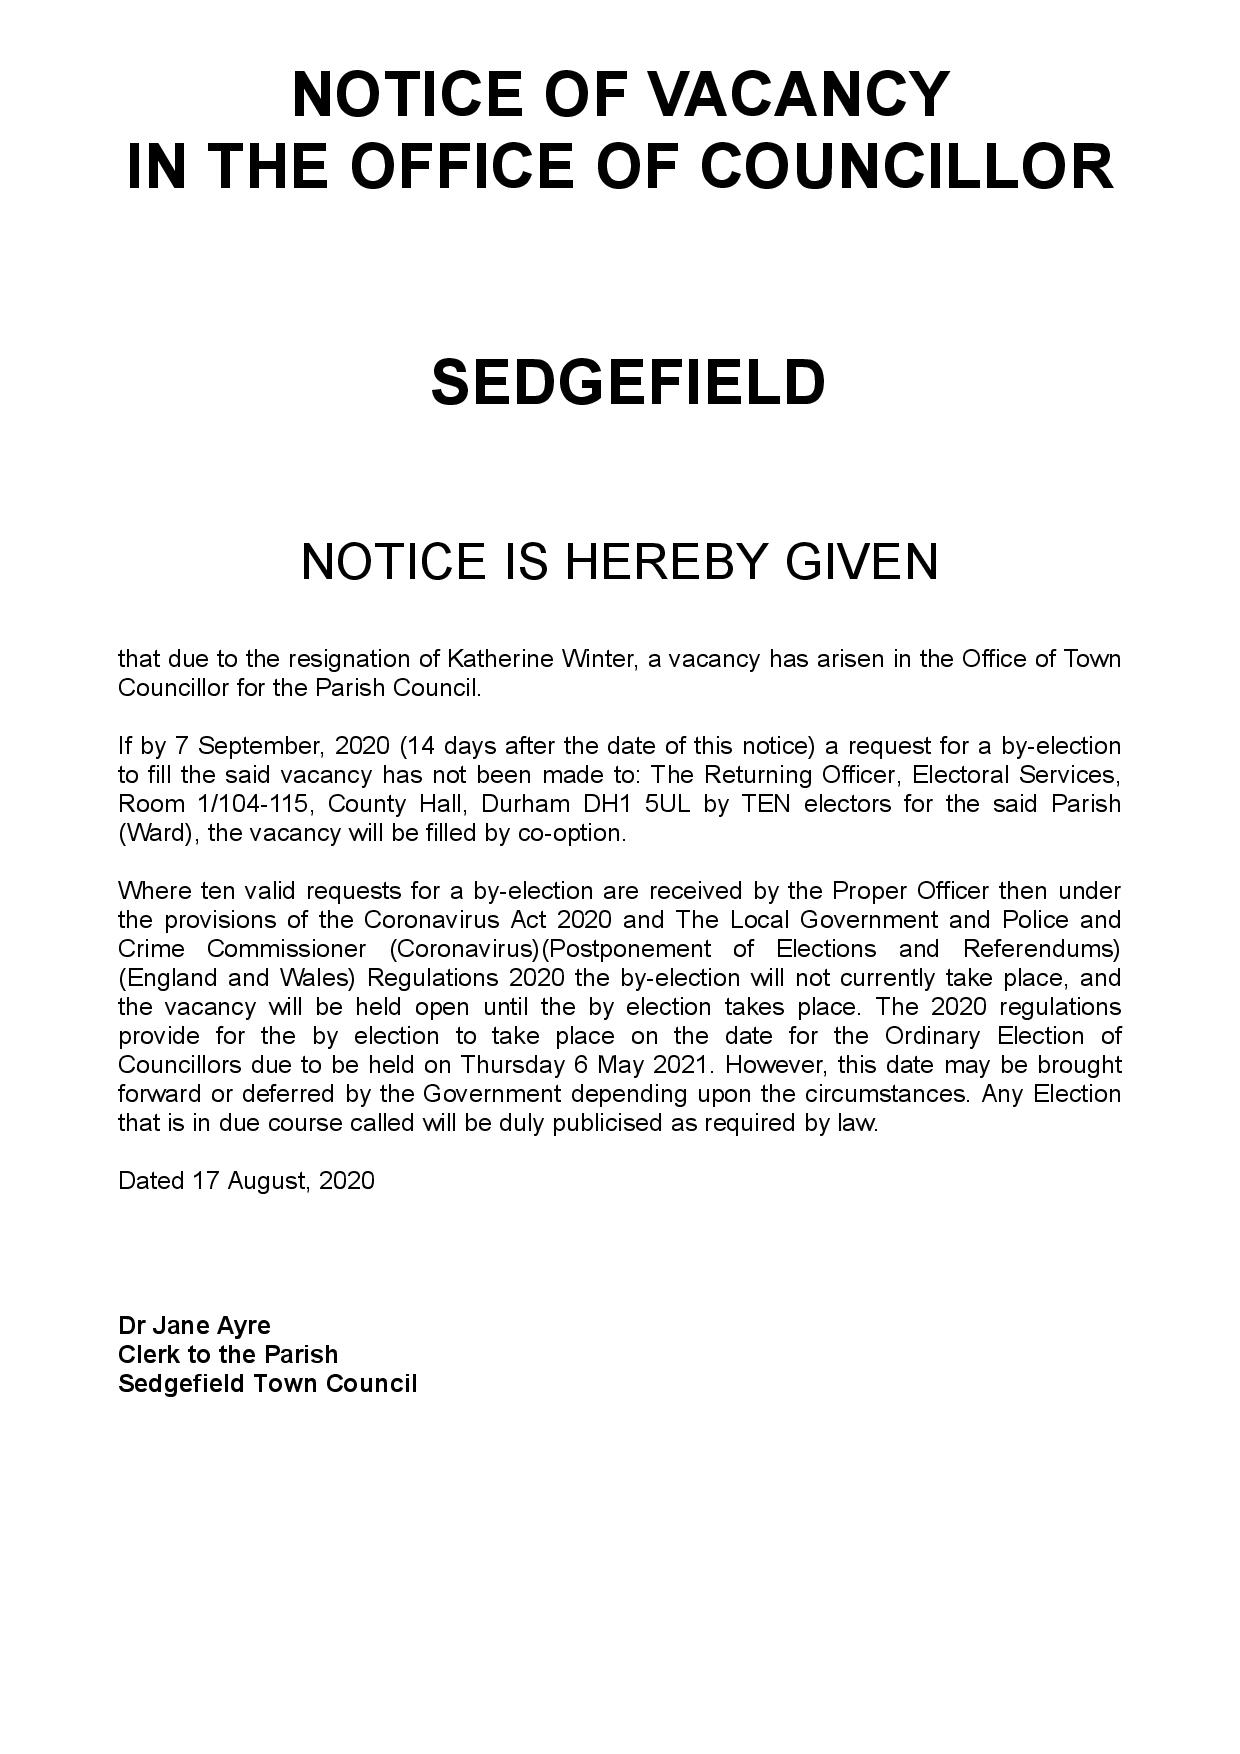 Notice of Vacancy - Sedgefield Town Council - dated 17 August 2020-page-001